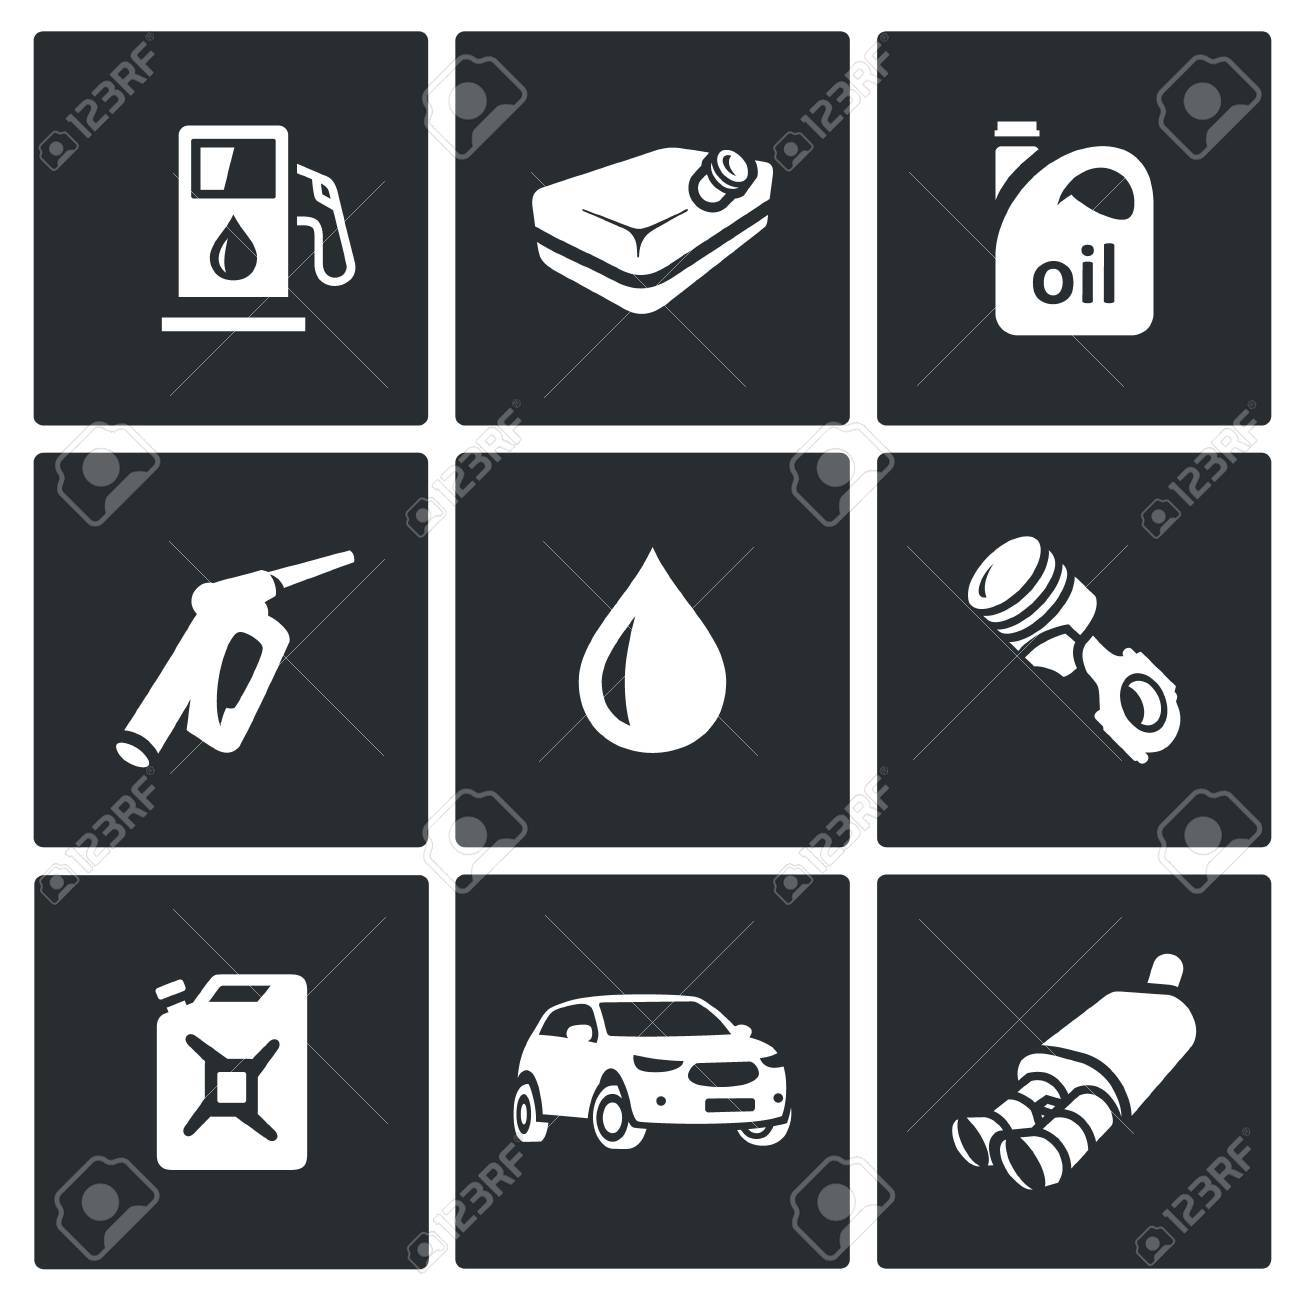 Refuelling The Car Equipment And Capacity Isolated Symbols